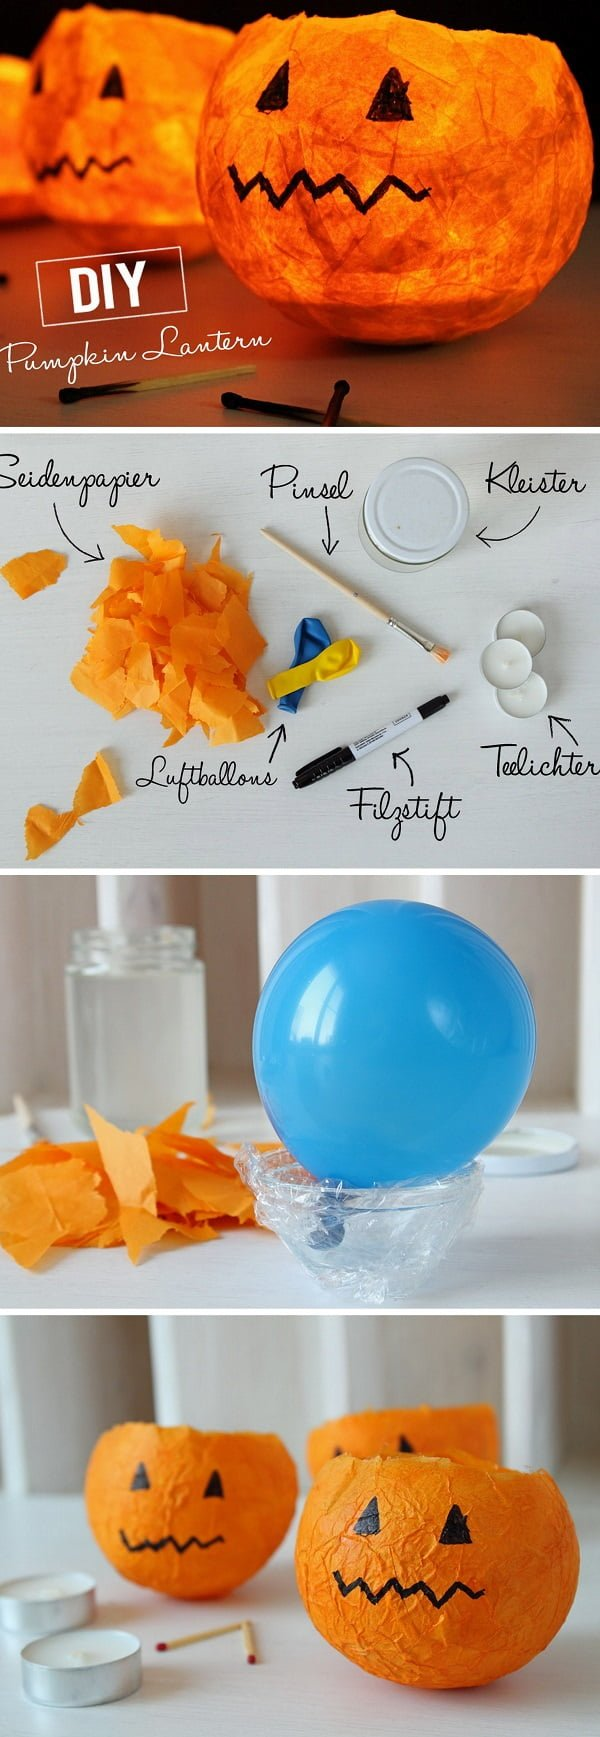 Check out the tutorial on how to make DIY pumpkin wind lanterns for Halloween home decoration